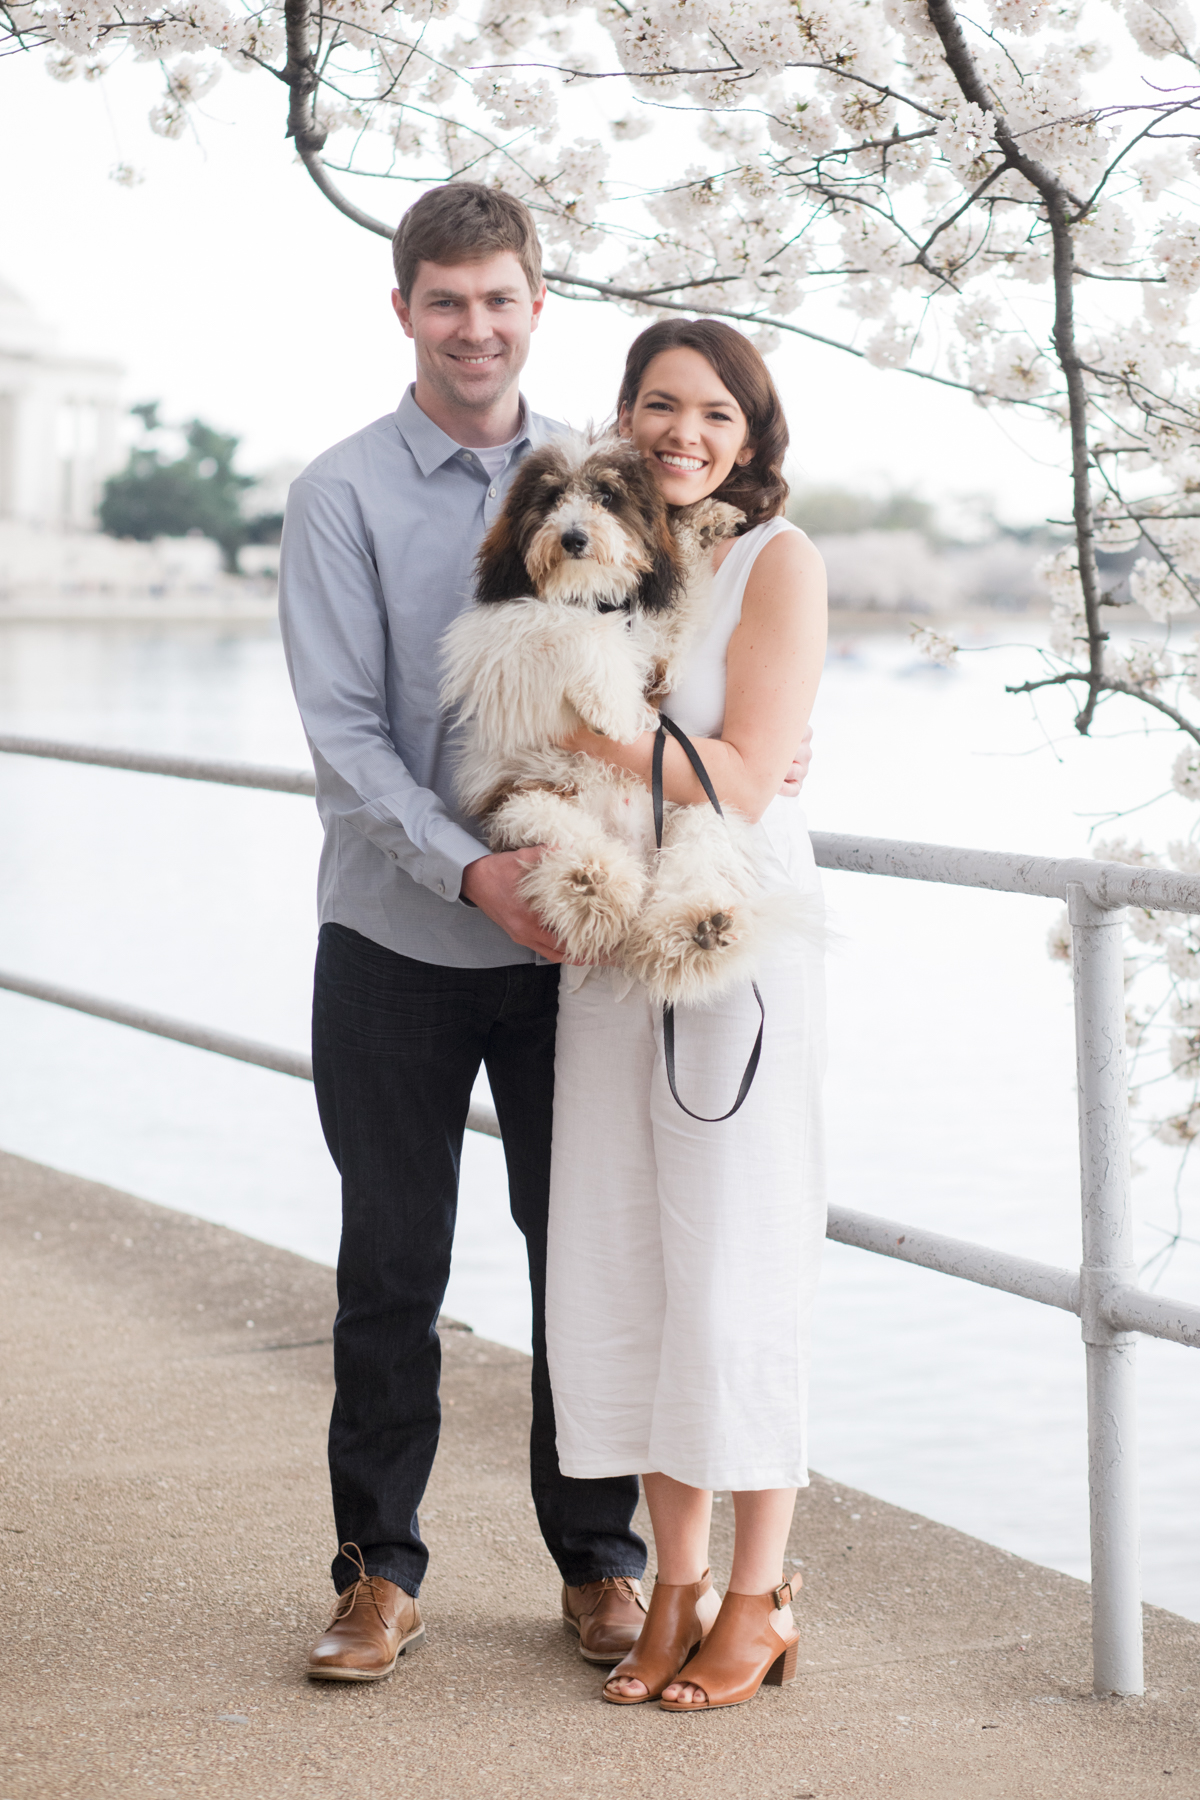 The Yoshino blossoms line the Tidal basin and set the dreamy backdrop for the adorable couple and their sweet pup.